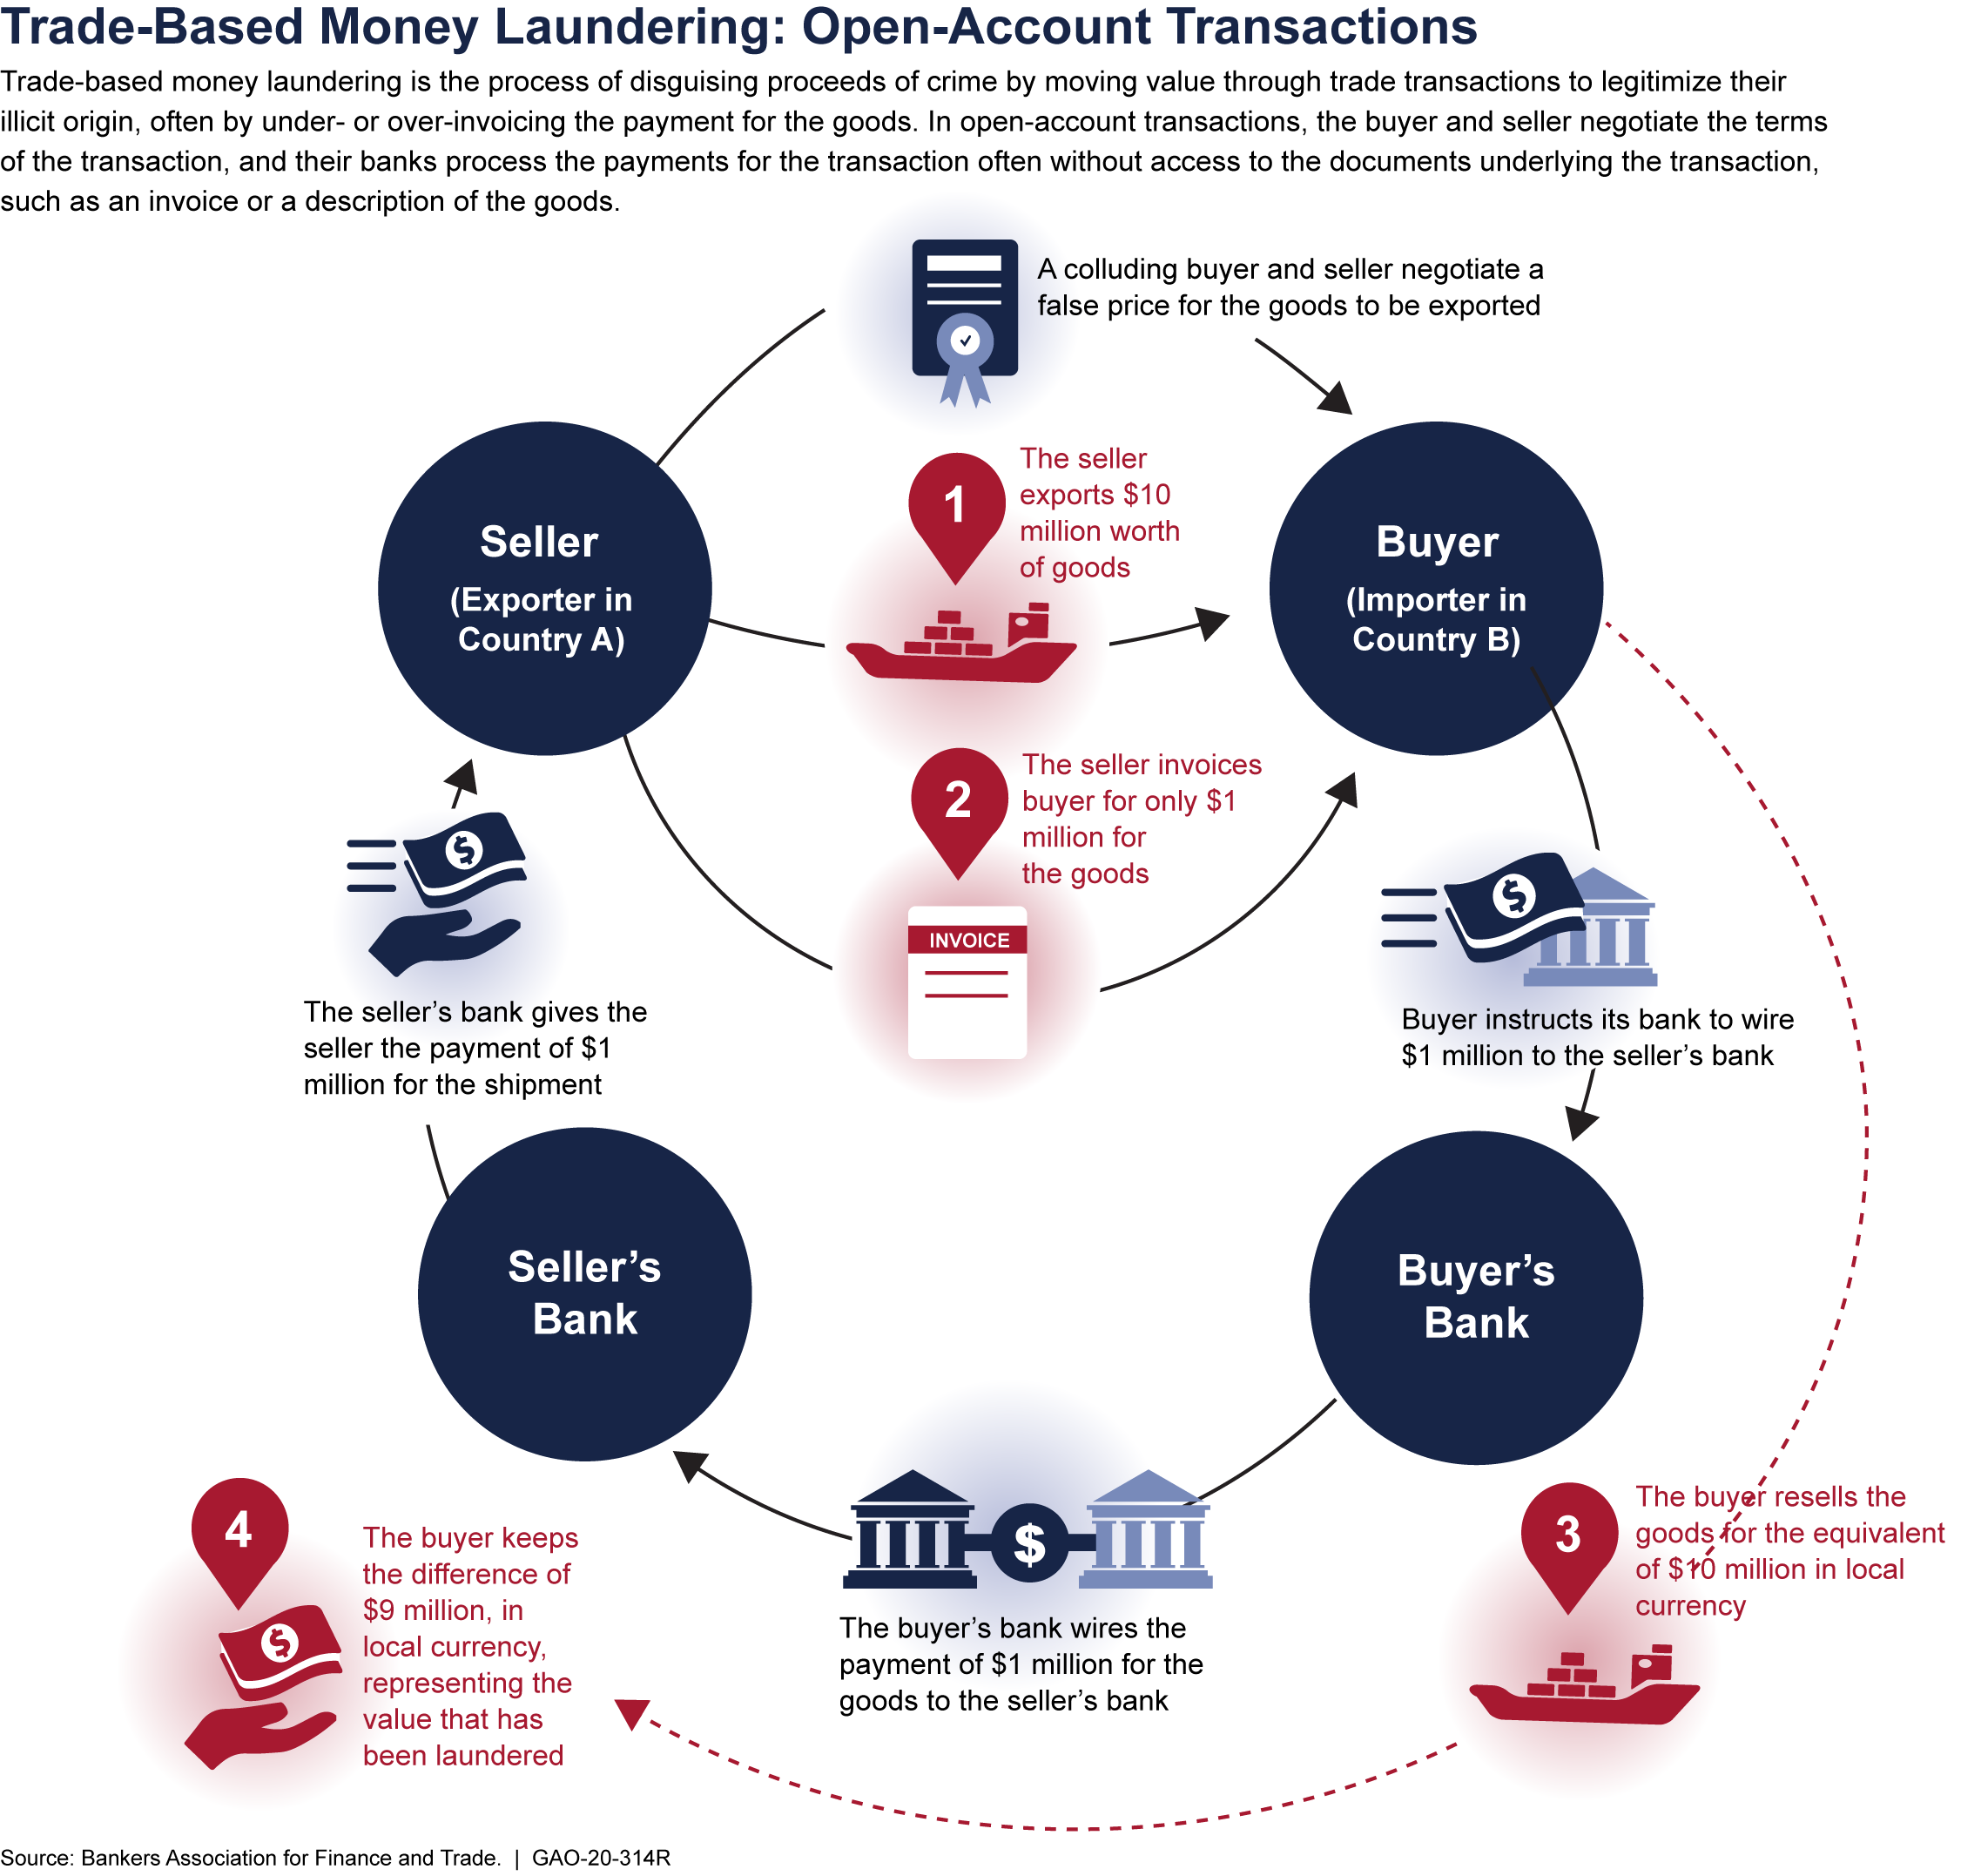 Trade-Based Money Laundering: Open-Account Transactions